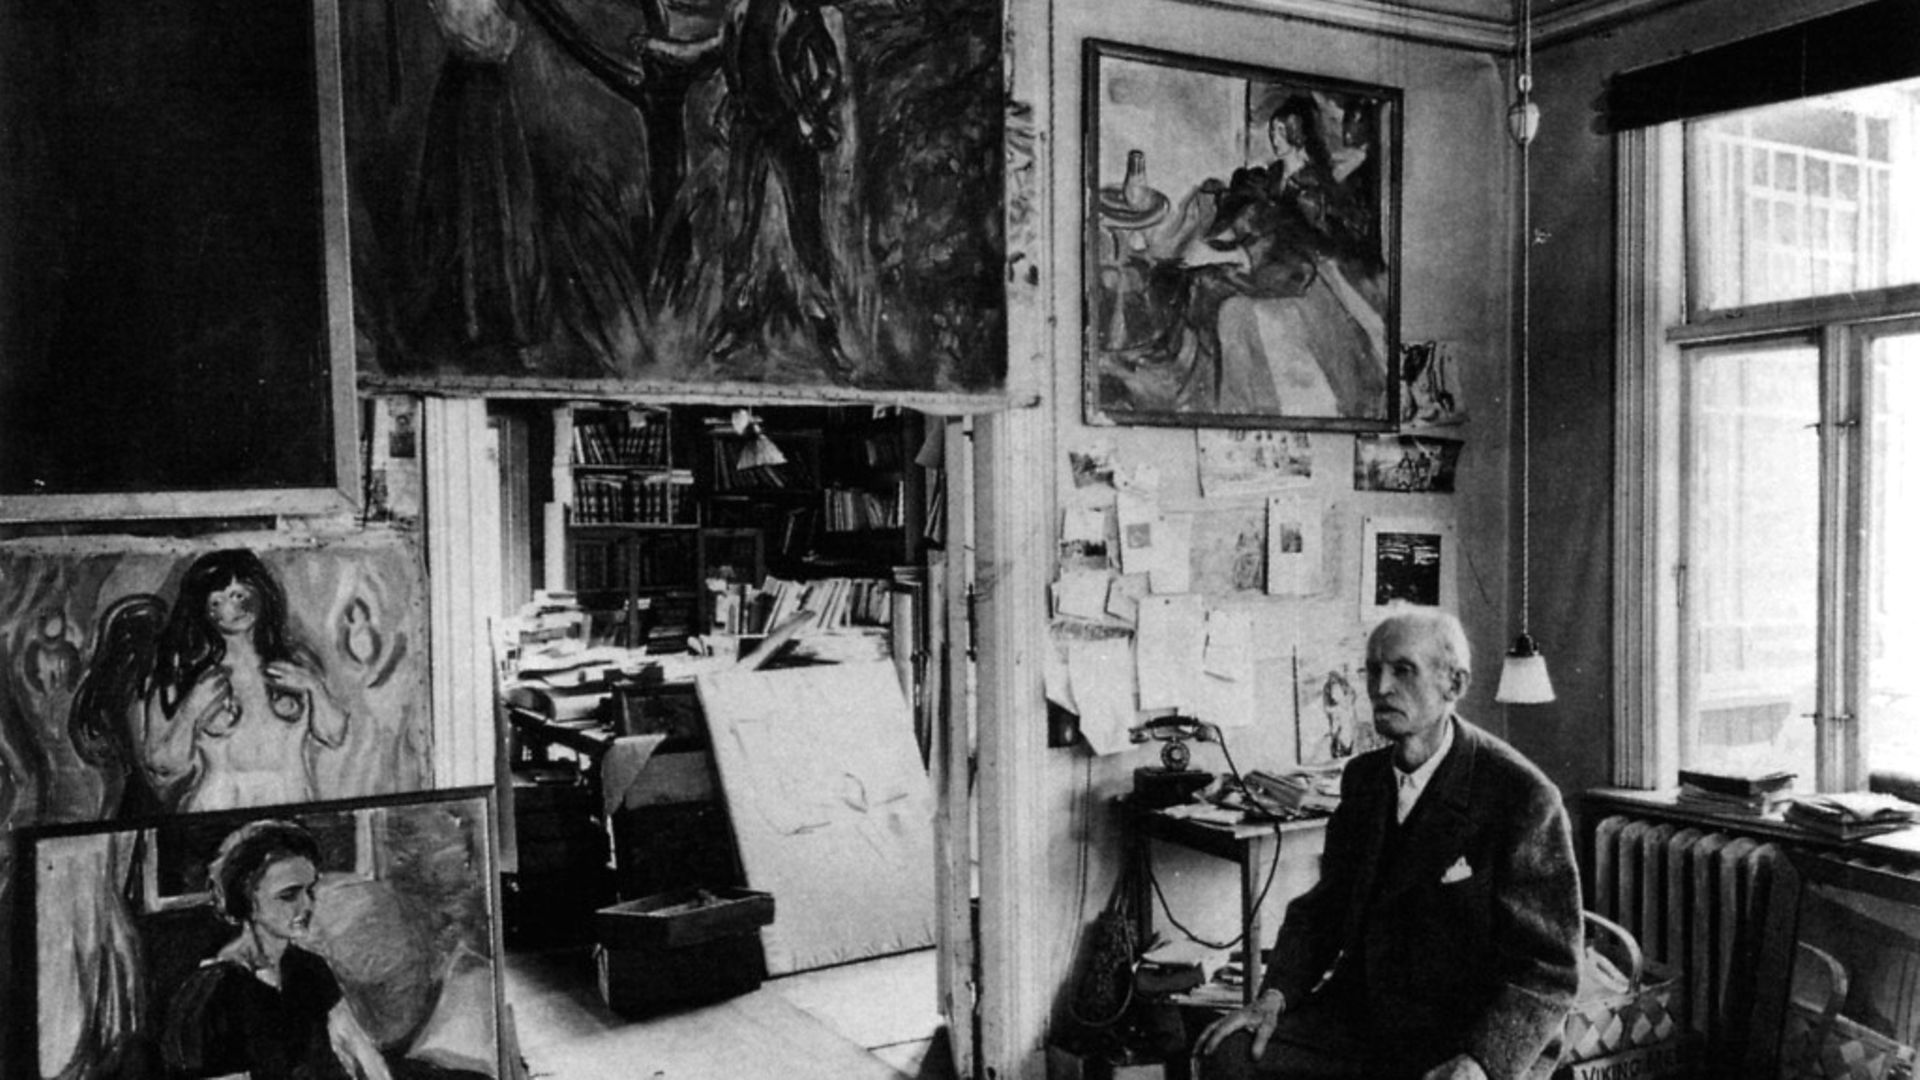 Edvard Munch in his studio with canvas. - Credit: Getty Images